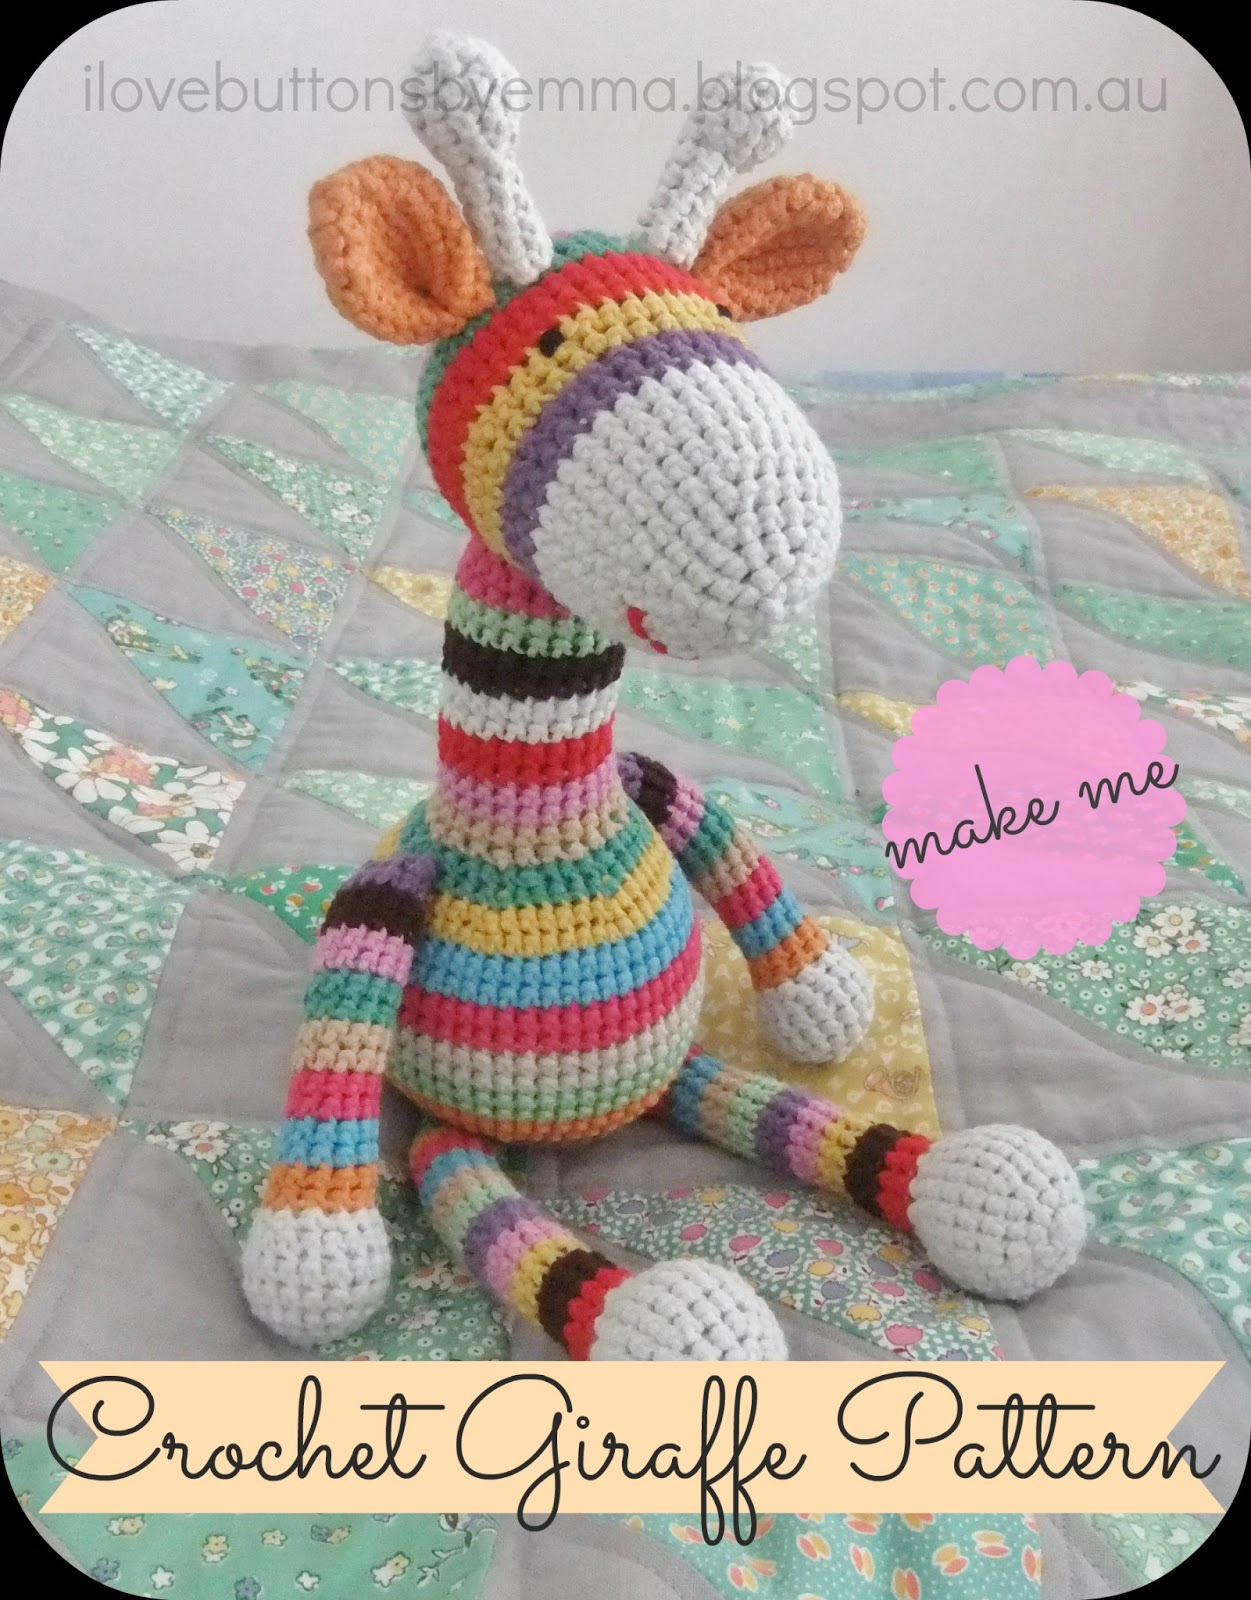 Crochet Patterns Animals Free : free crochet amigurumi animals pattern giraffe car tuning Car Tuning